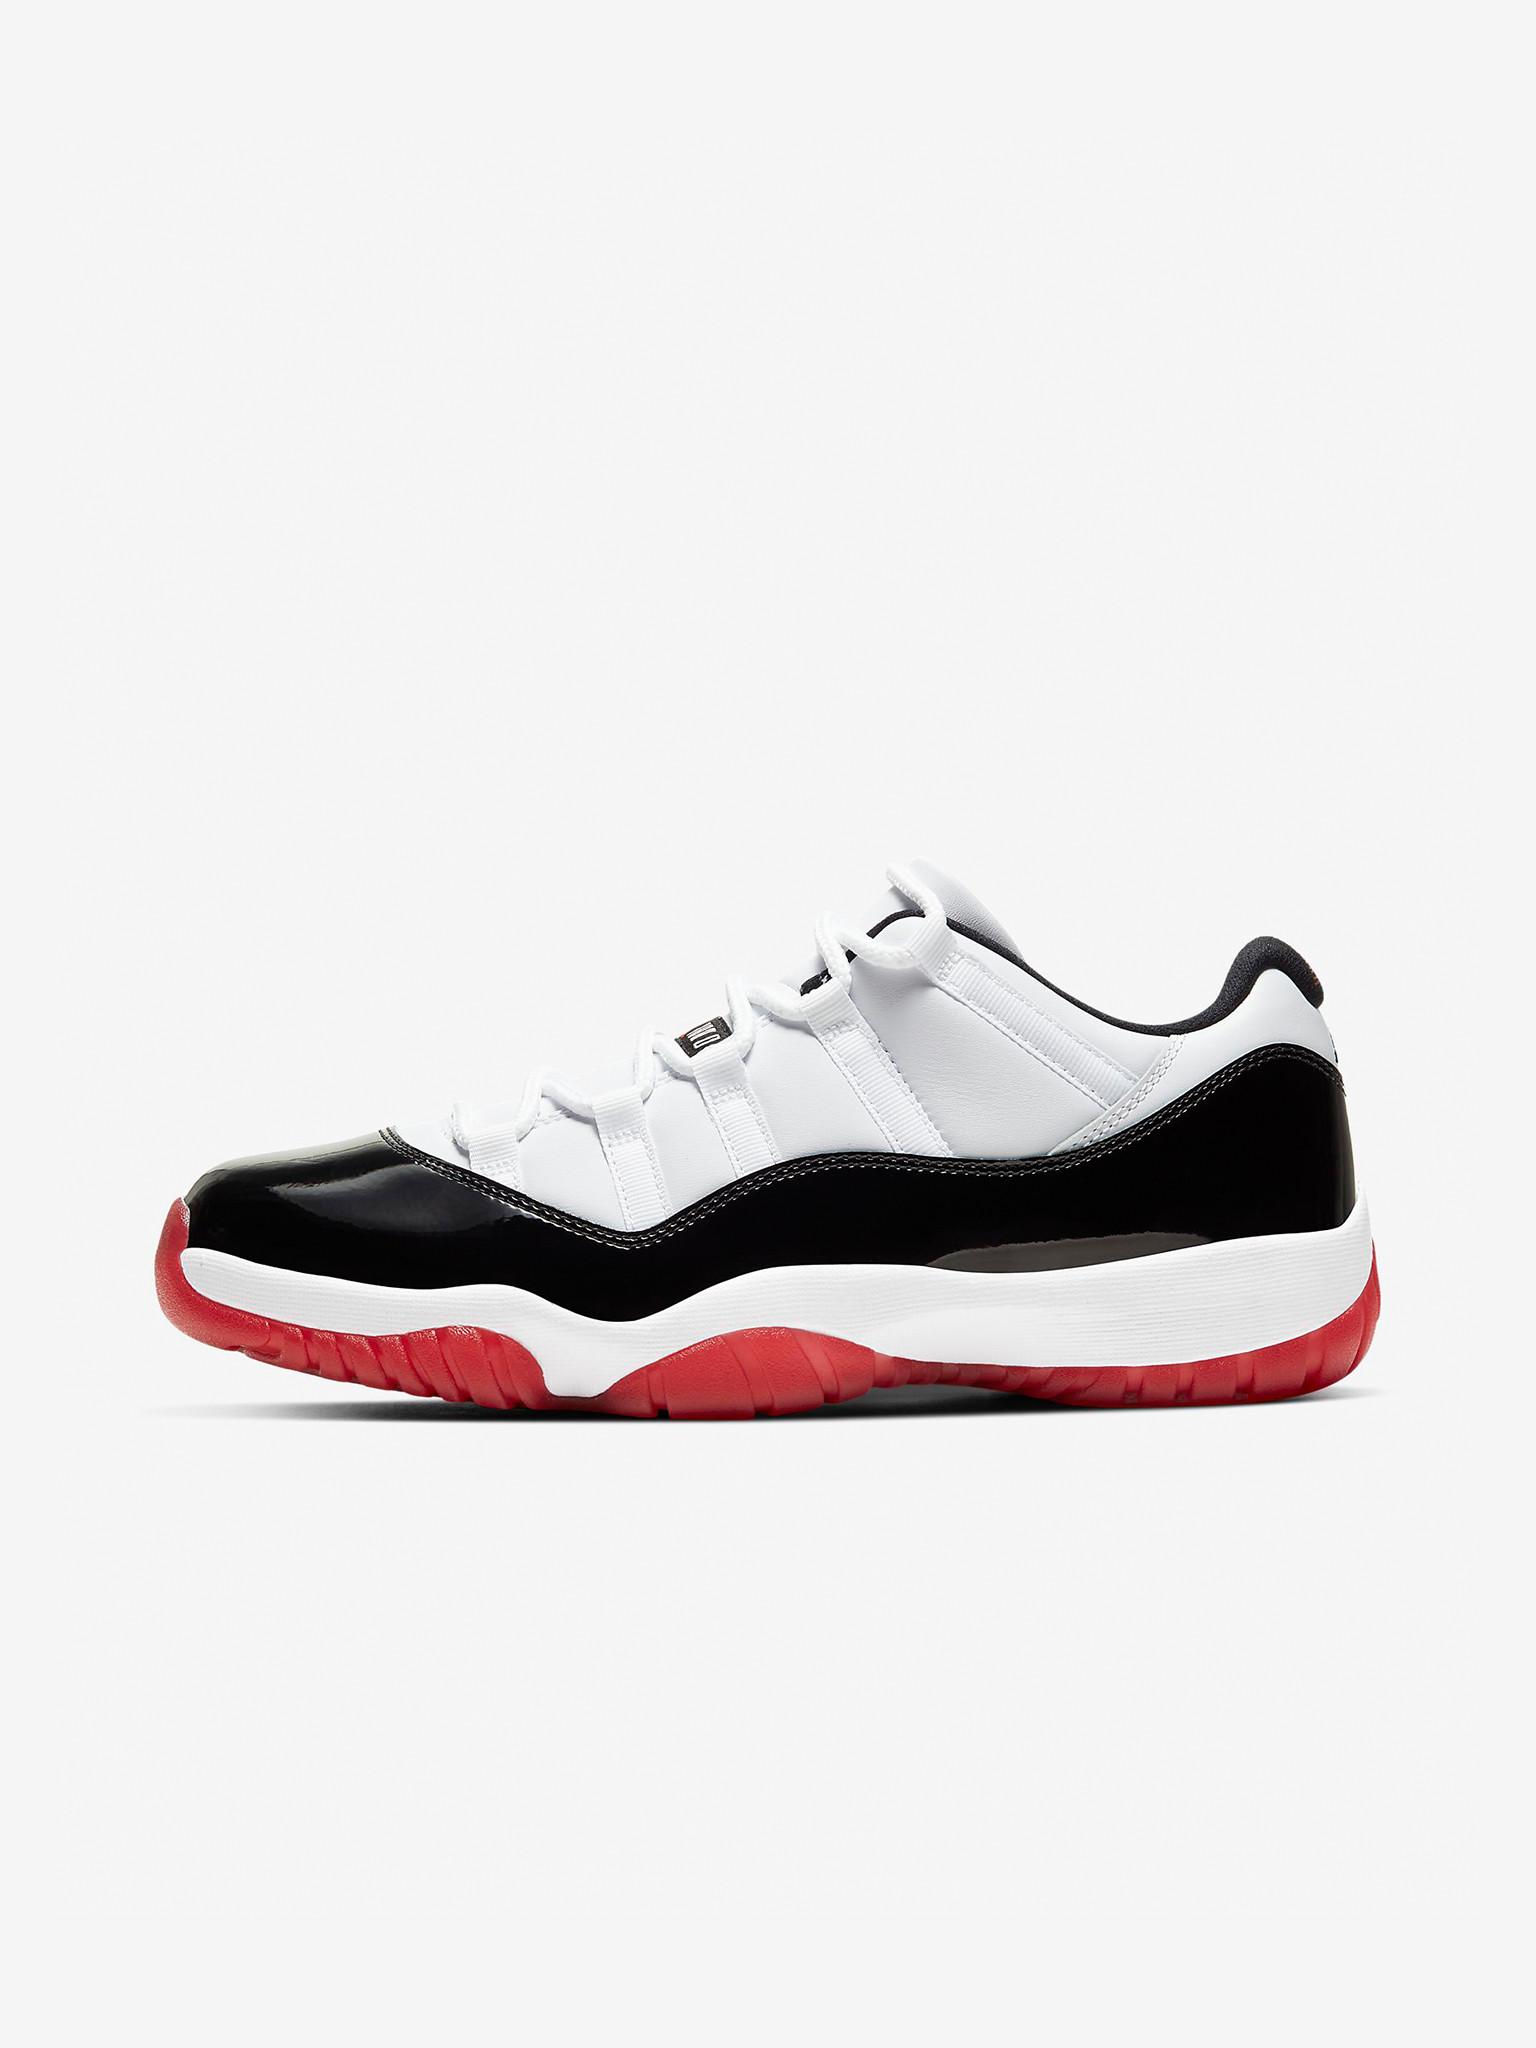 11 Retro Low Concord Bred Sneakers